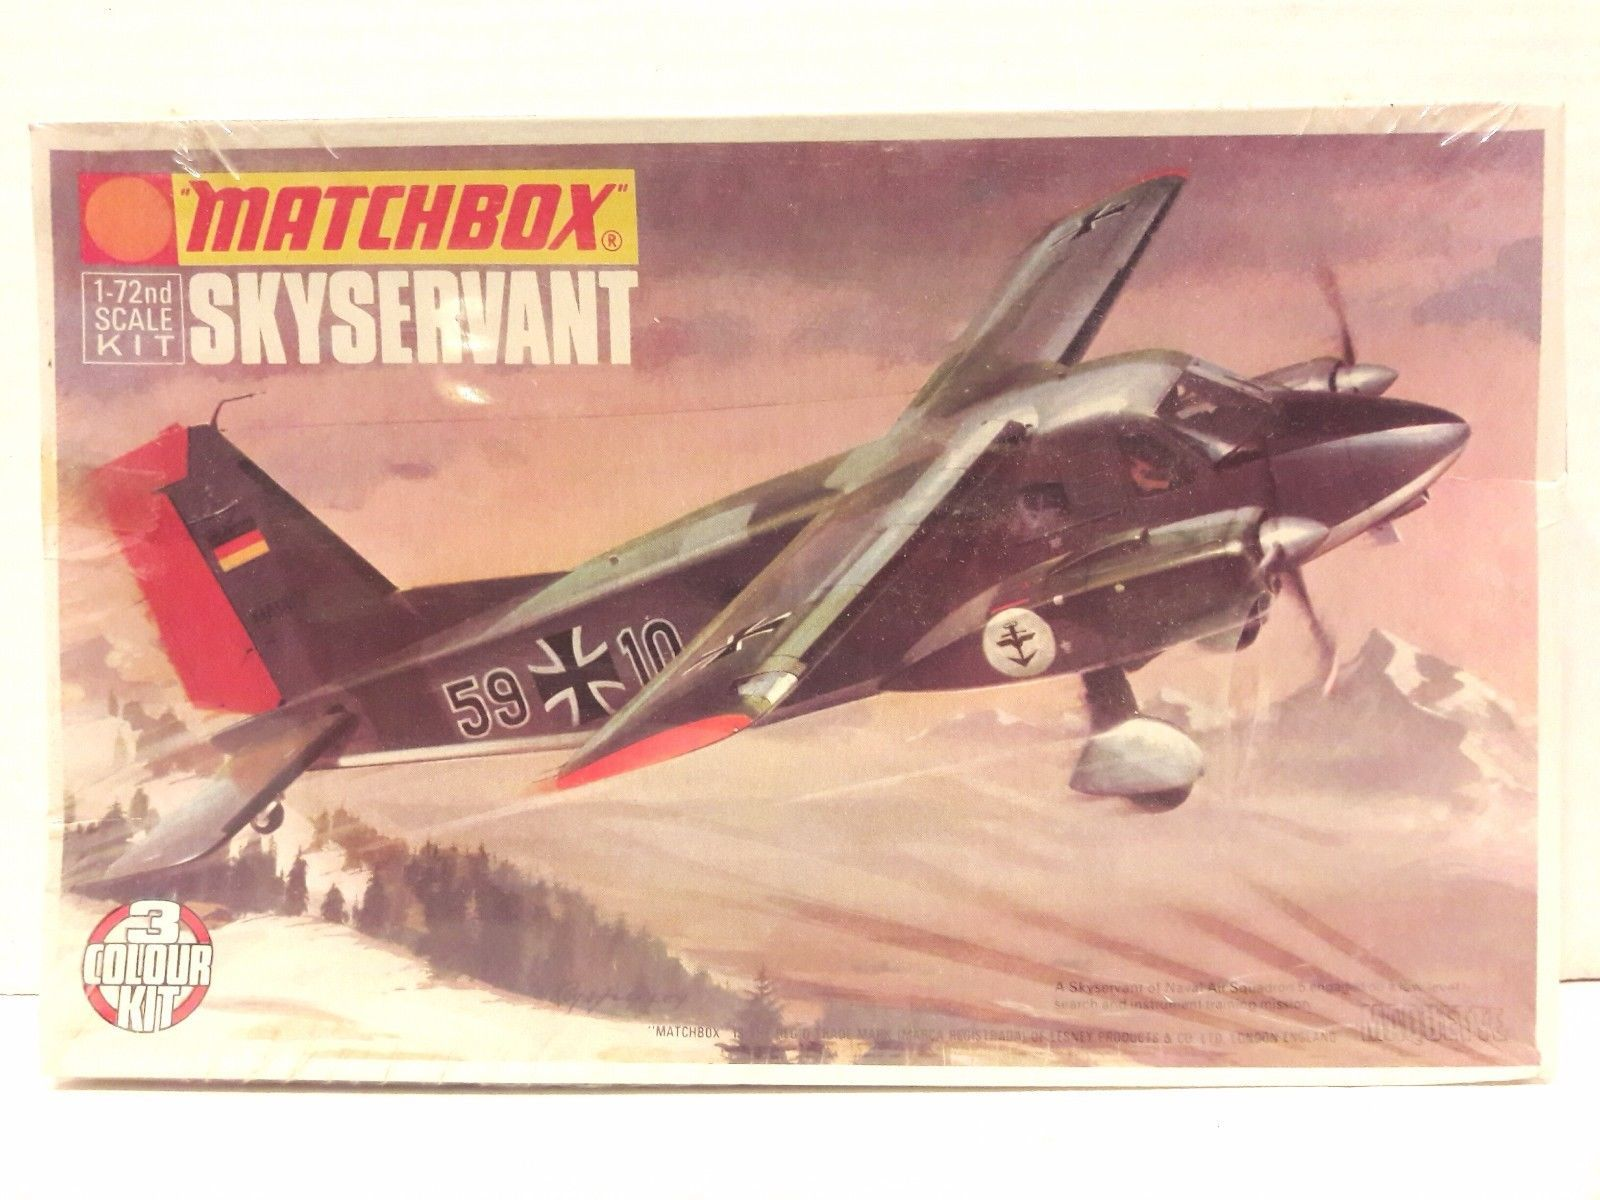 Primary image for New Matchbox 1/72 Scale Skyservant Plastic 3-Colour Model Kit No. PK-107